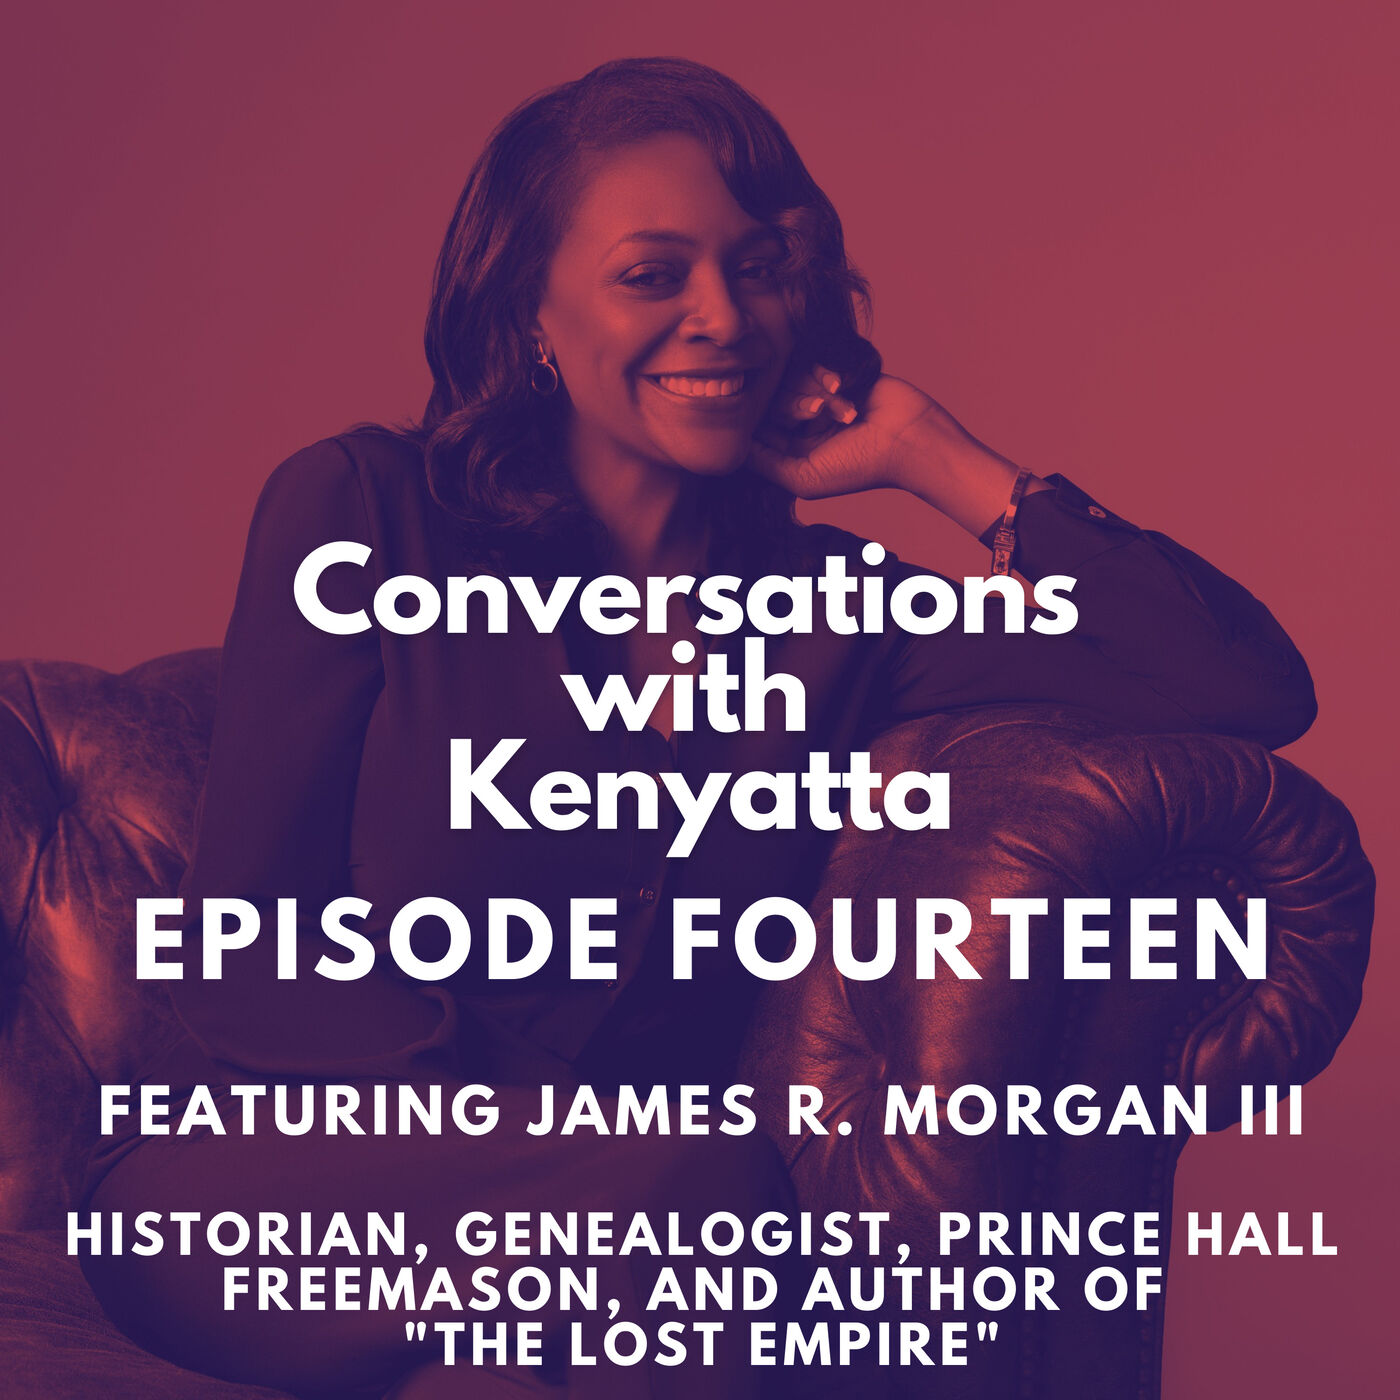 A Conversation with Author and Historian James R. Morgan III